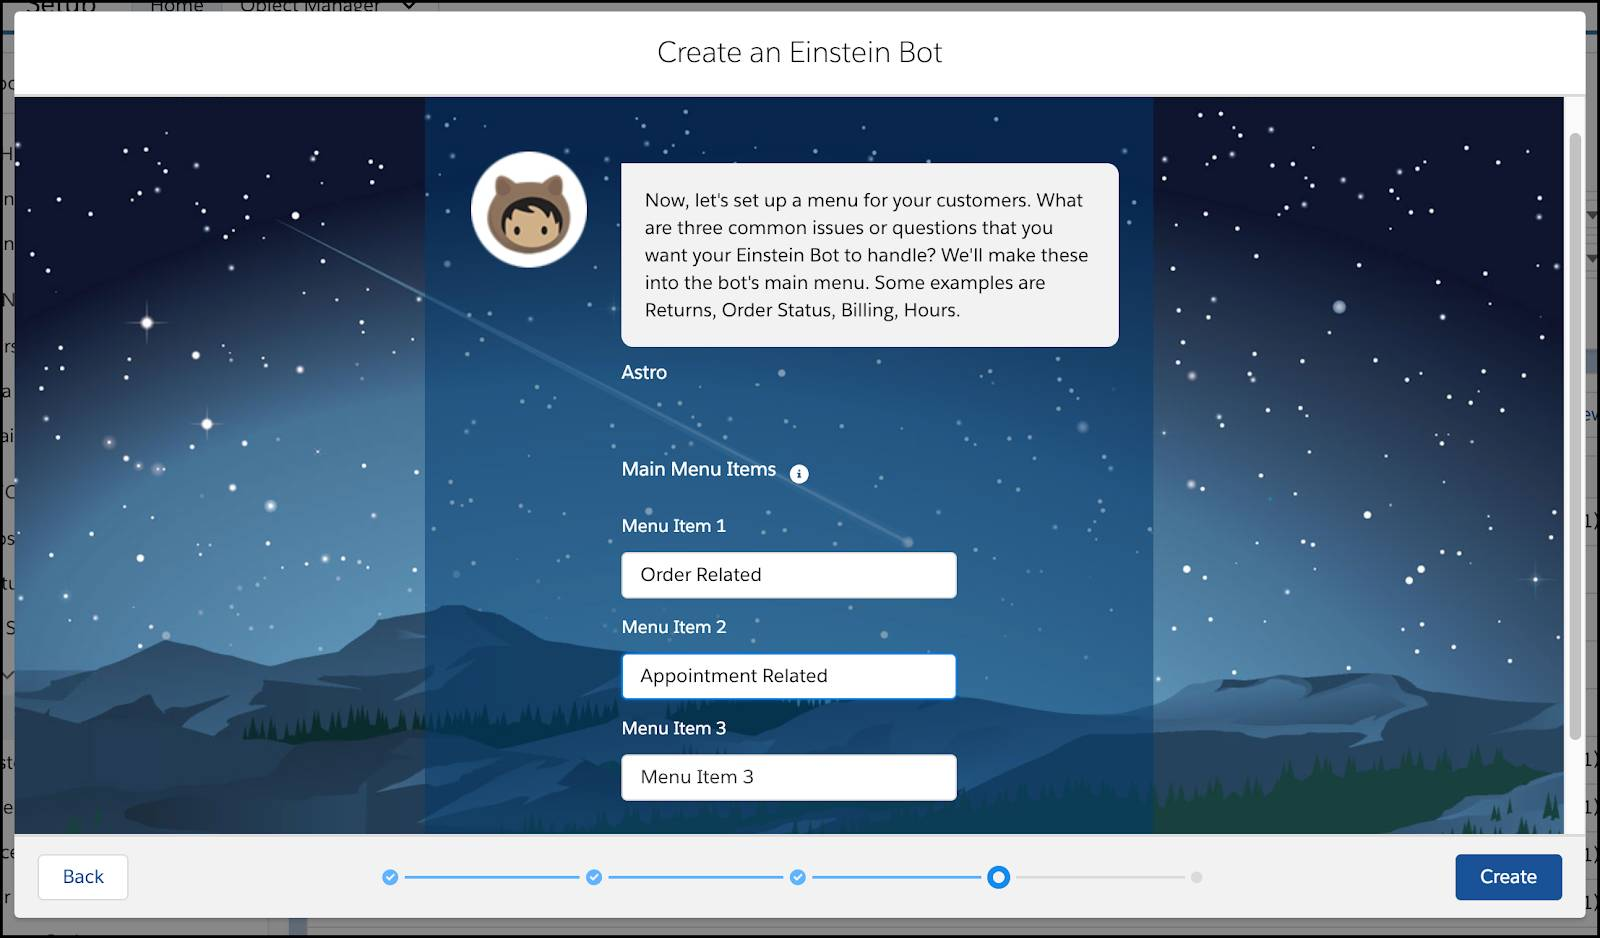 The Create an Einstein Bot setup screen with a message from Astro and configurable menu items.